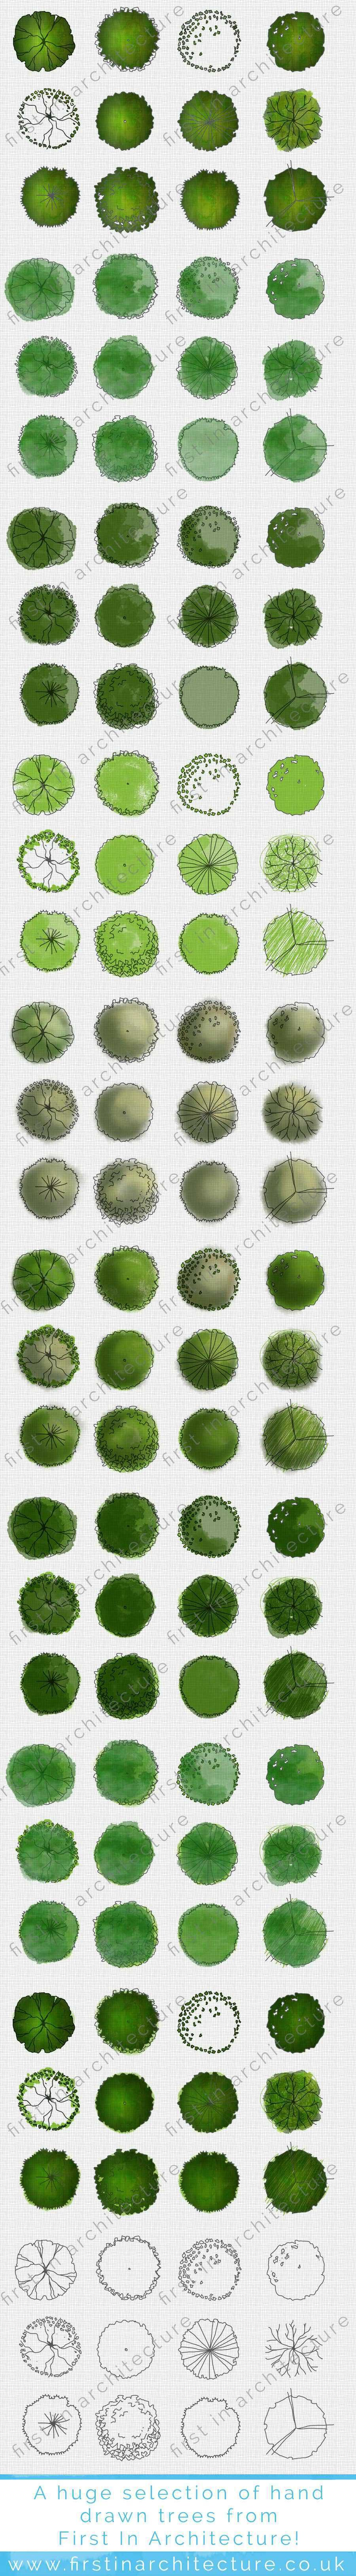 Landscape Architecture Plan Trees fia hand drawn trees download | architectural diagrams | pinterest